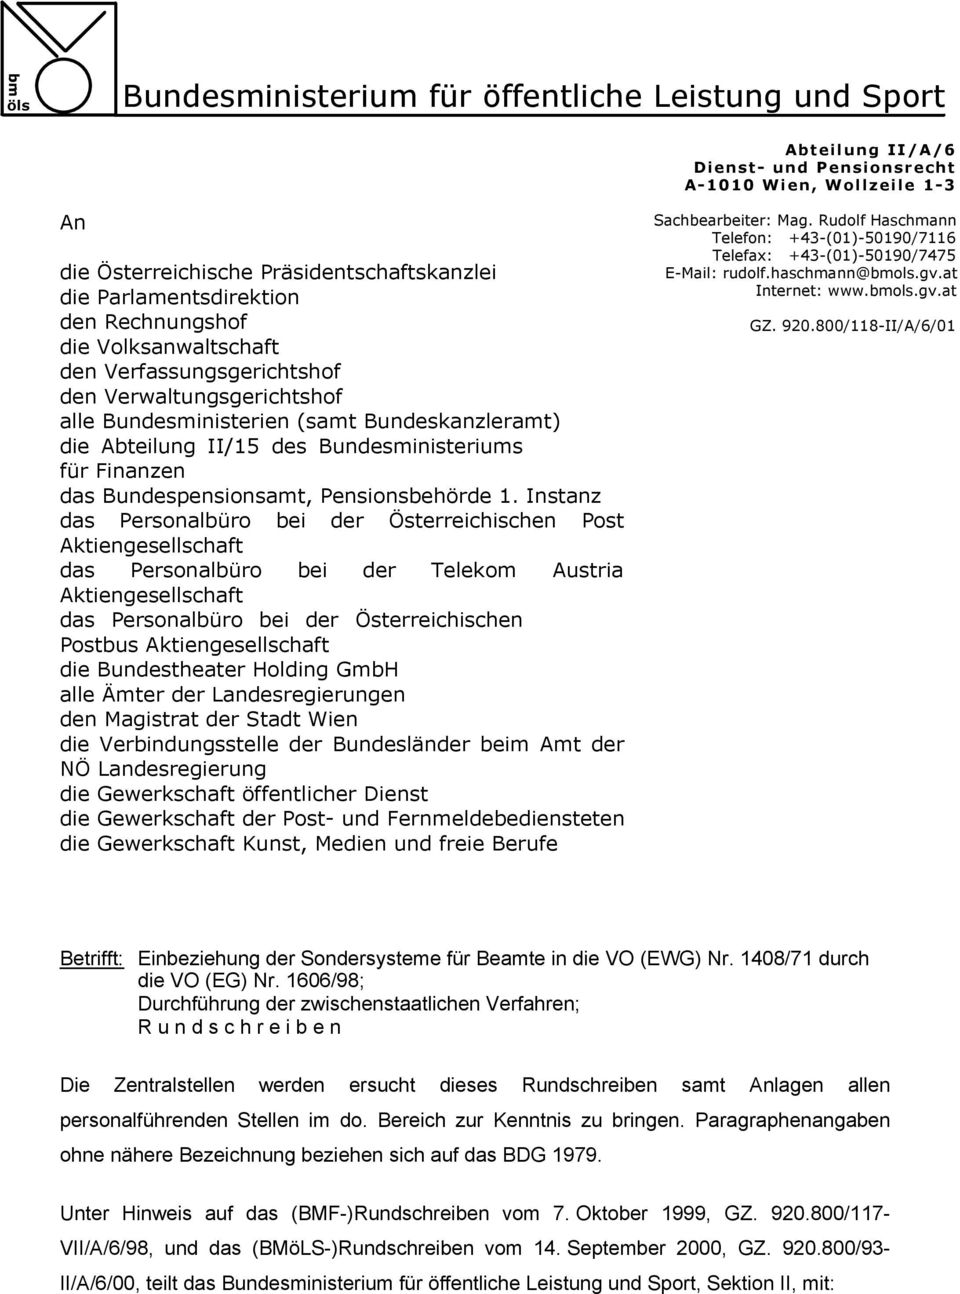 Bundespensionsamt, Pensionsbehörde 1.